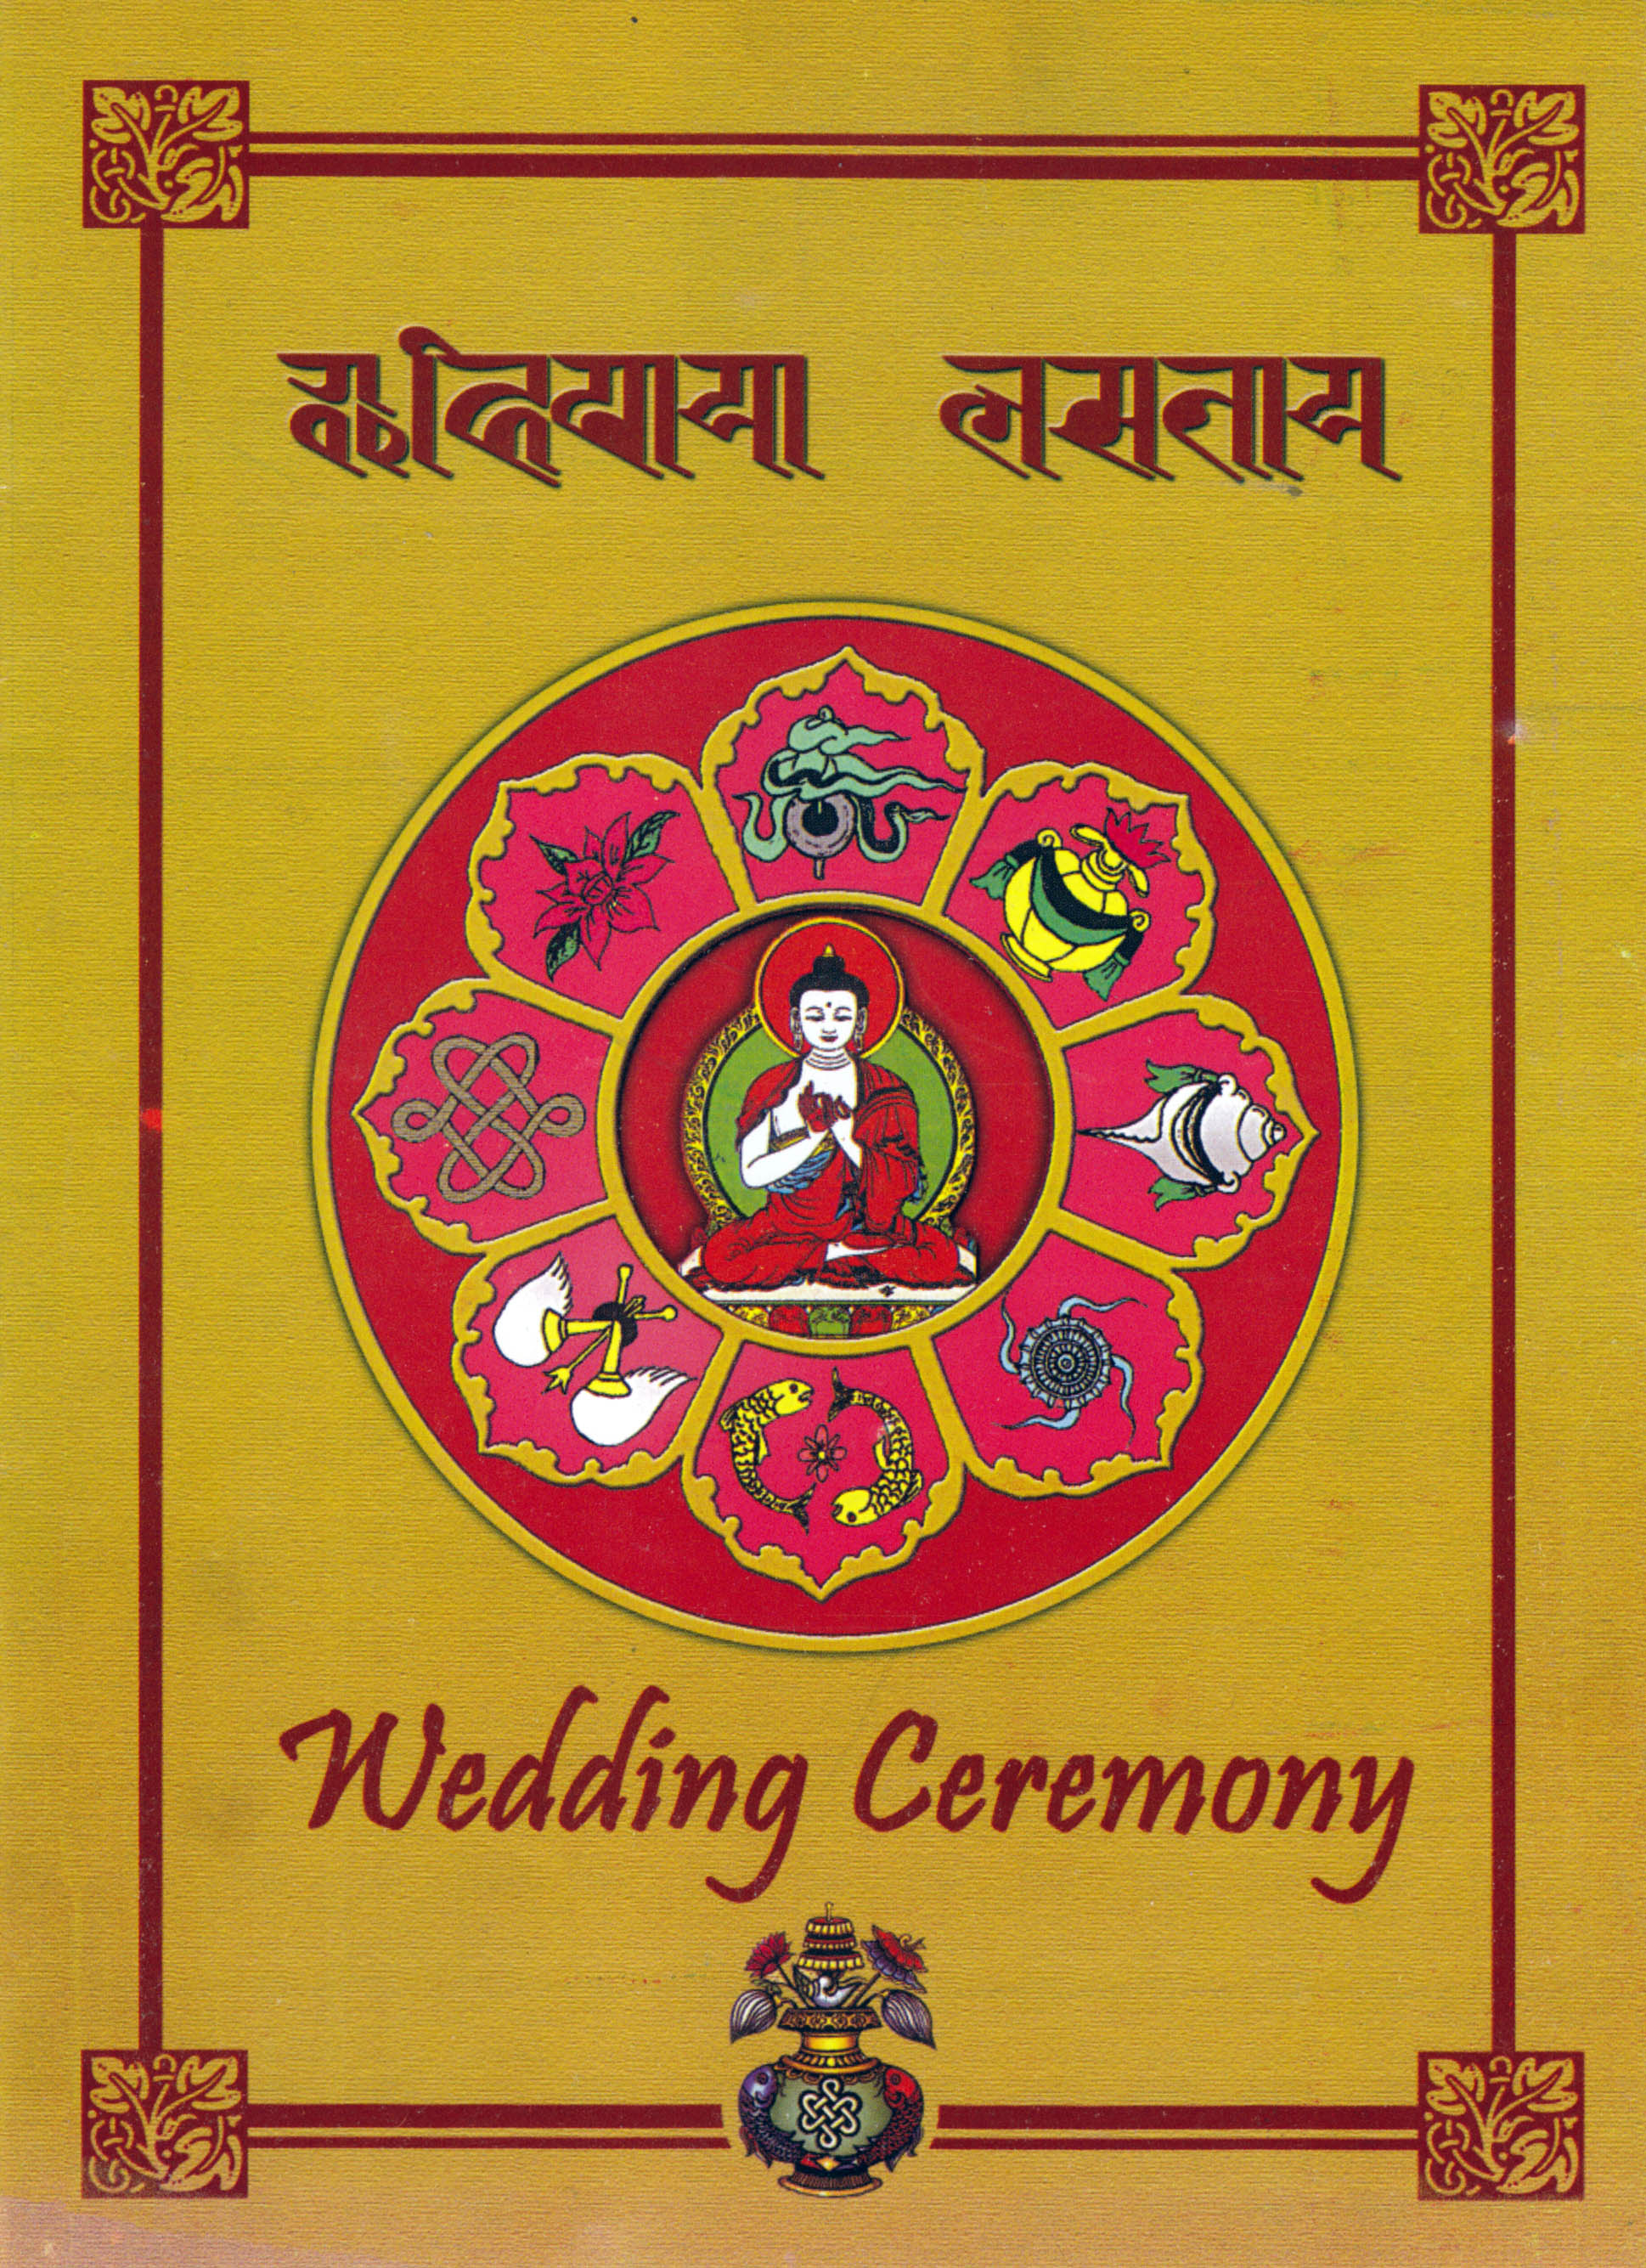 File:Invitation card.jpg - Wikimedia Commons